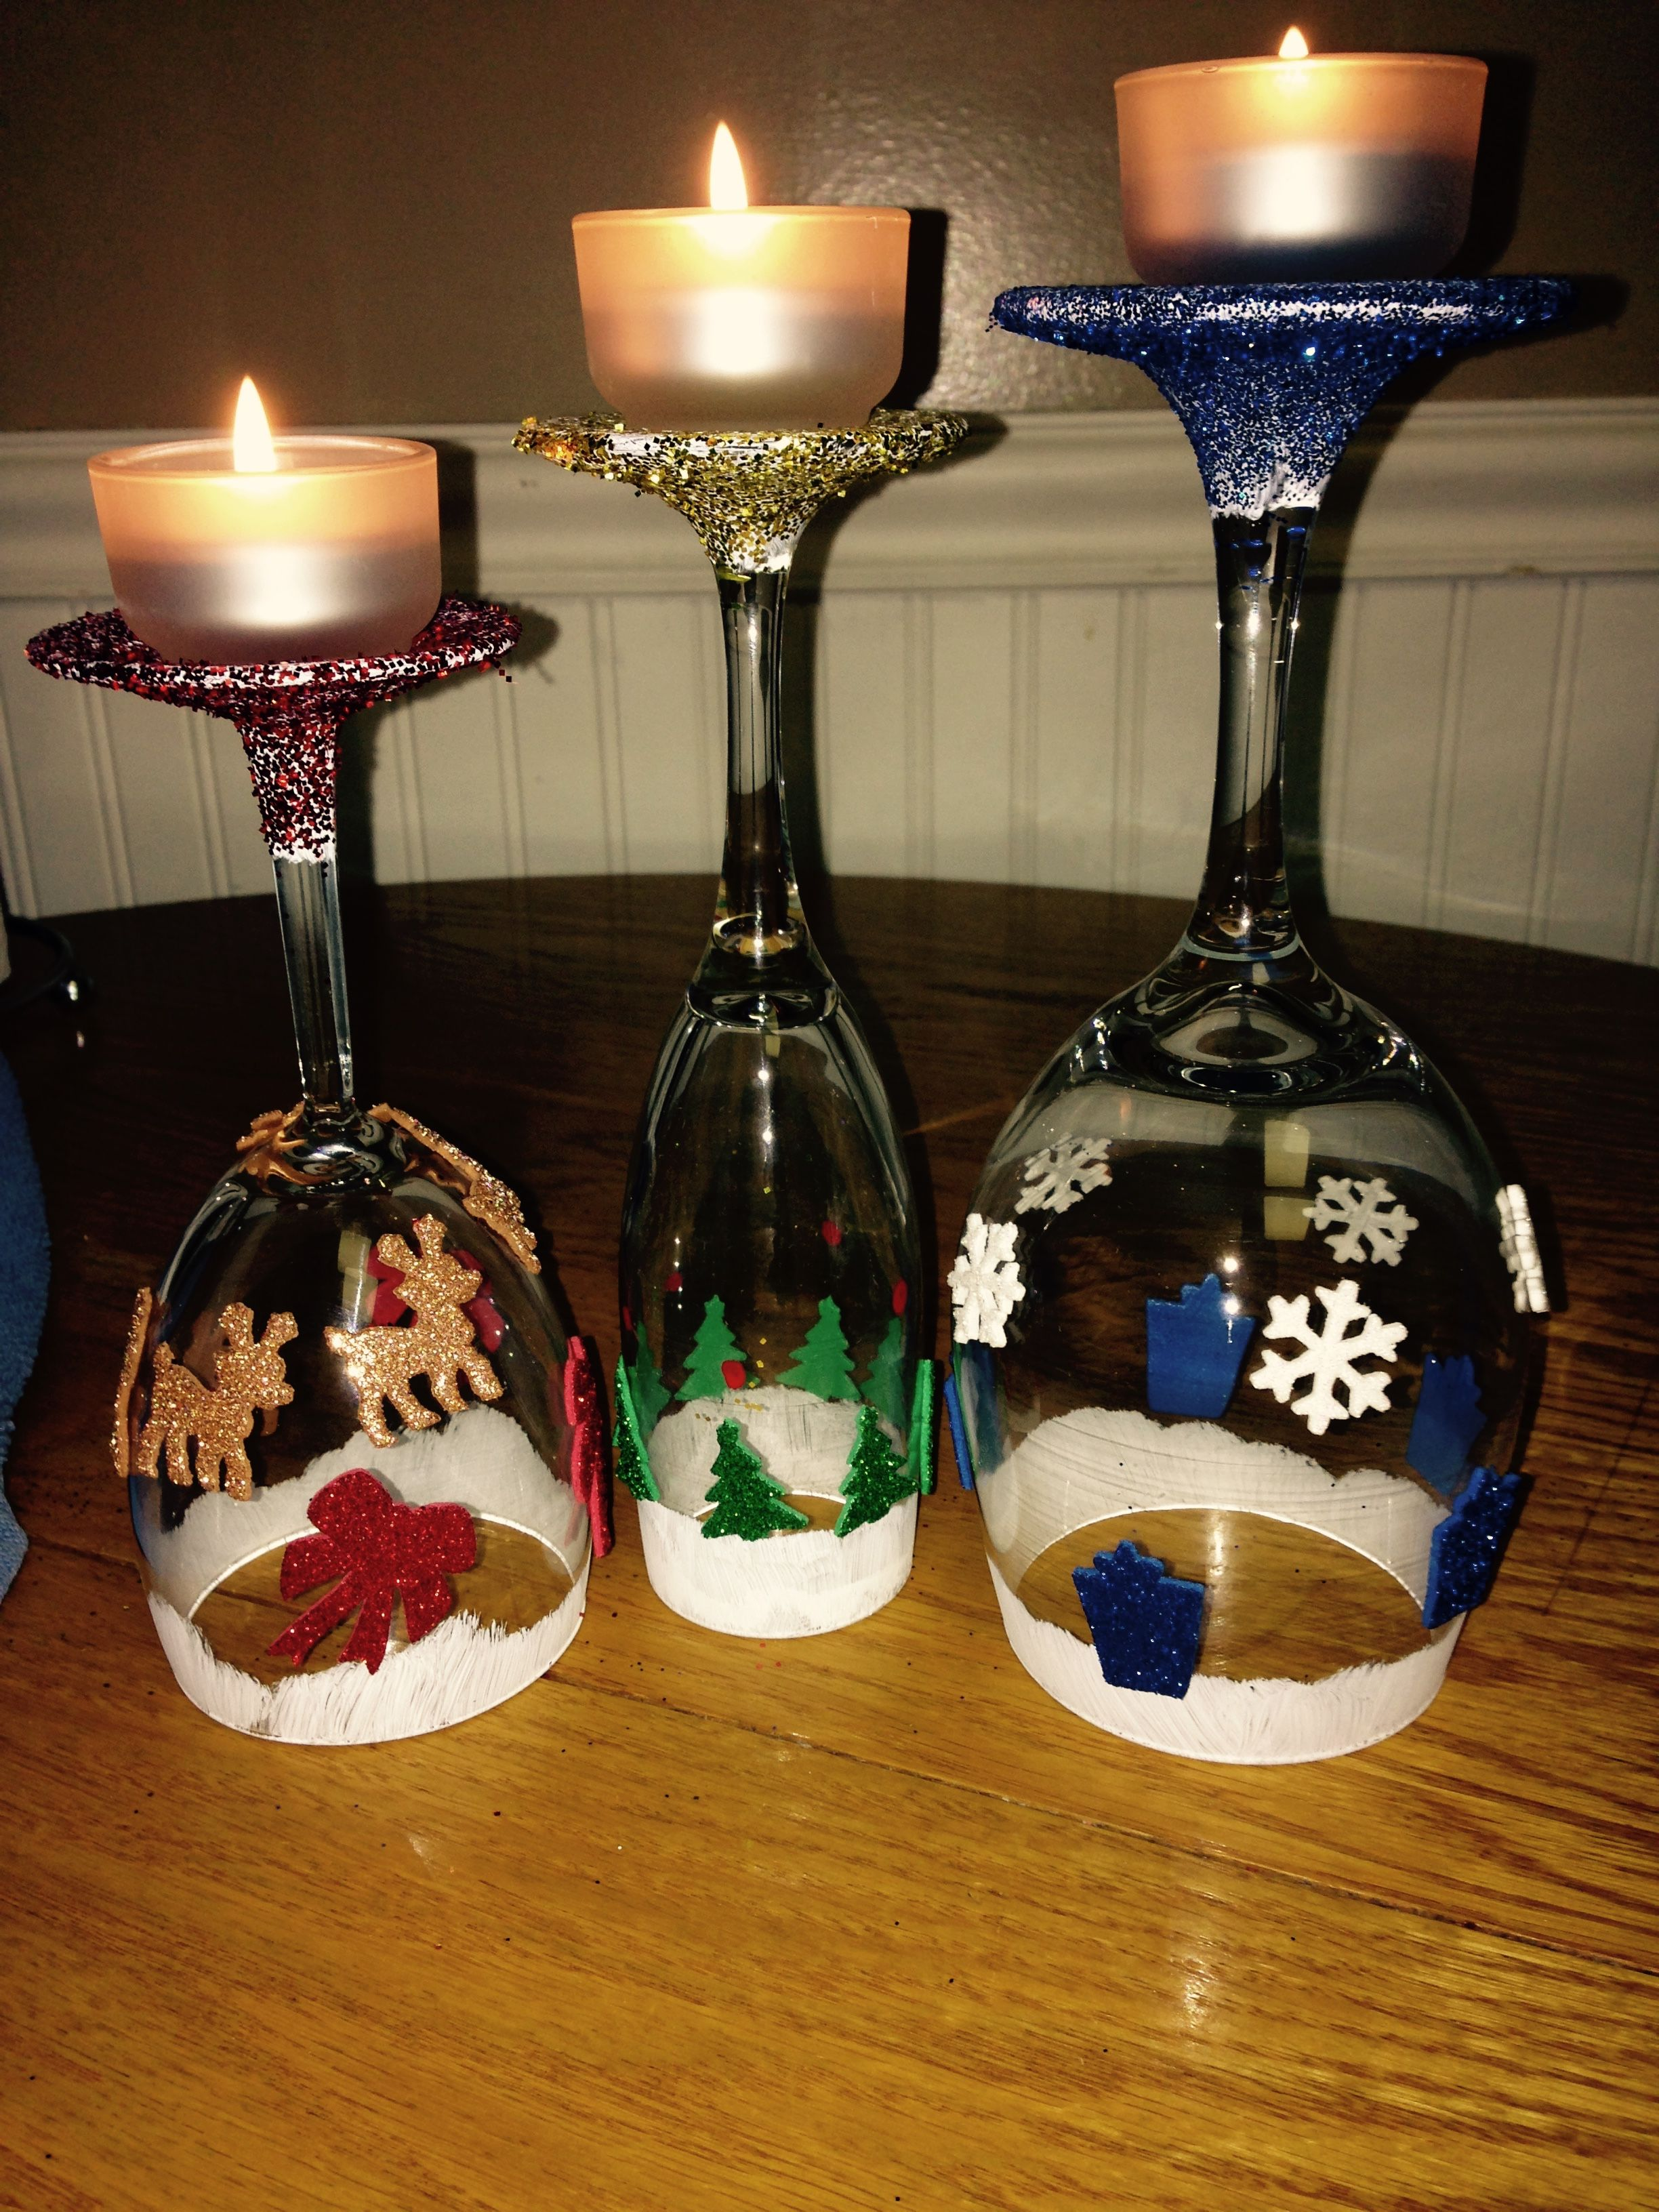 Sarah Made These Wine Glasses Upside Down Into Candle Holders